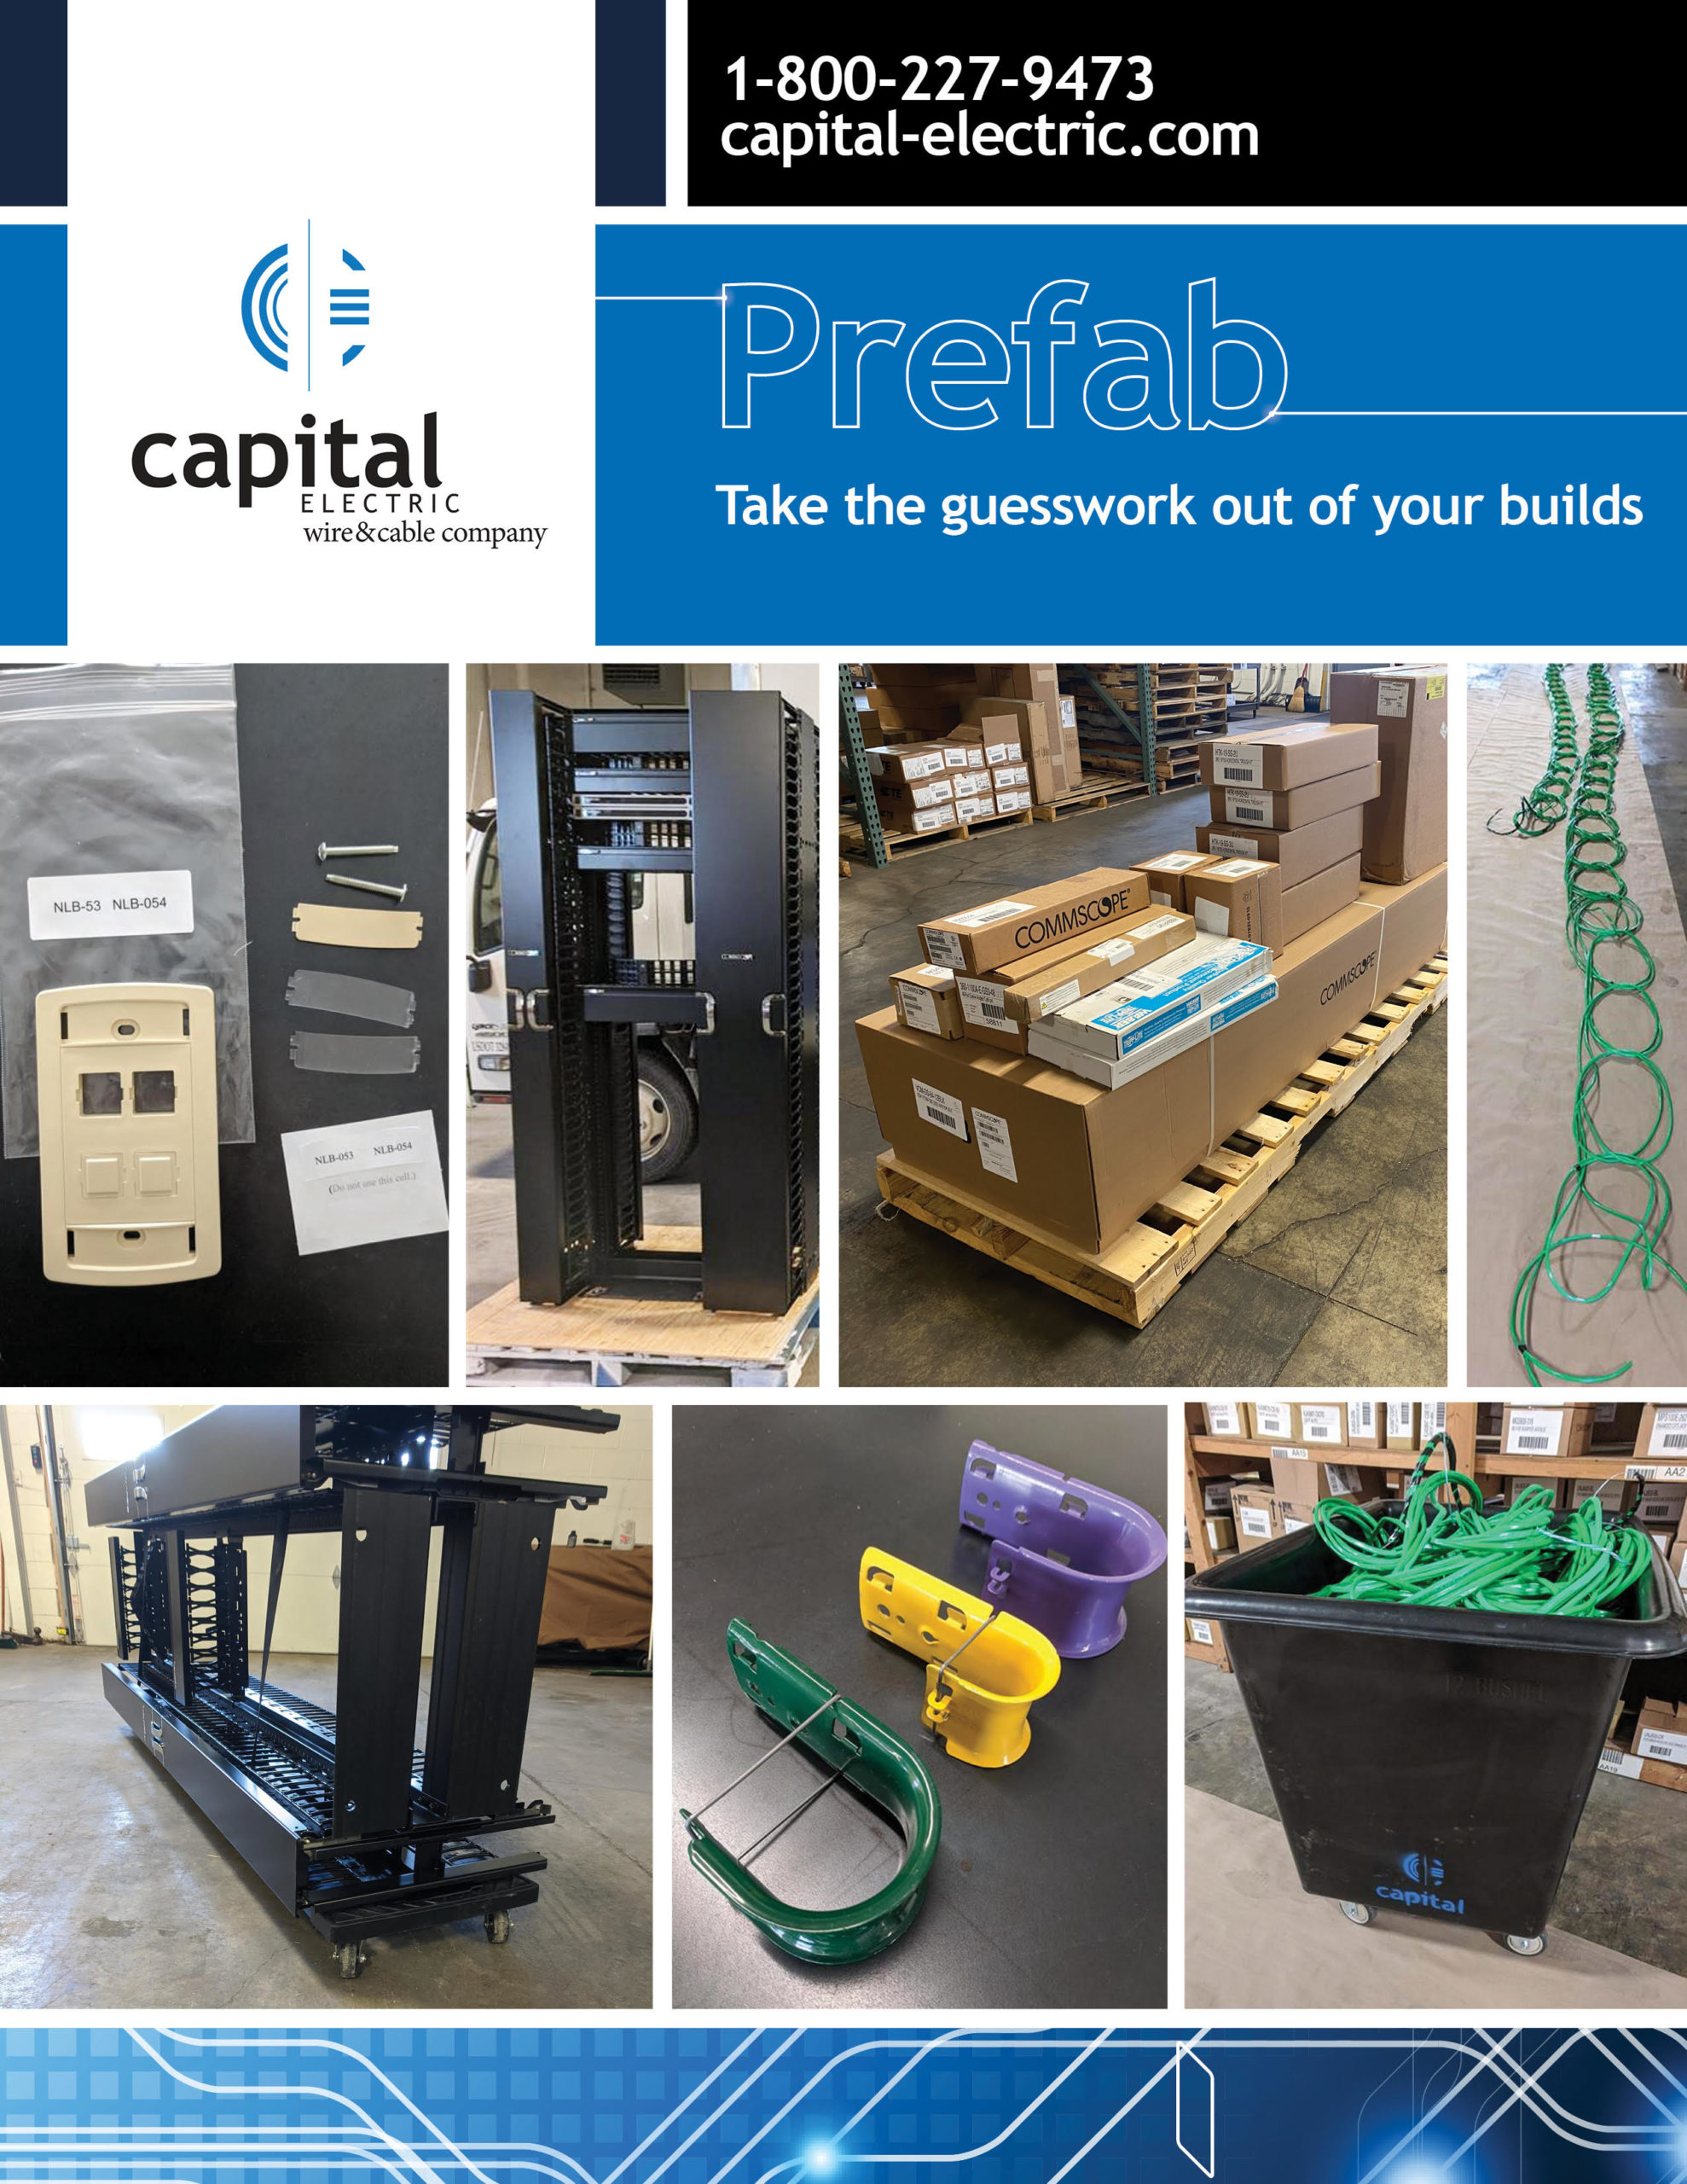 prefab capital-electric.com